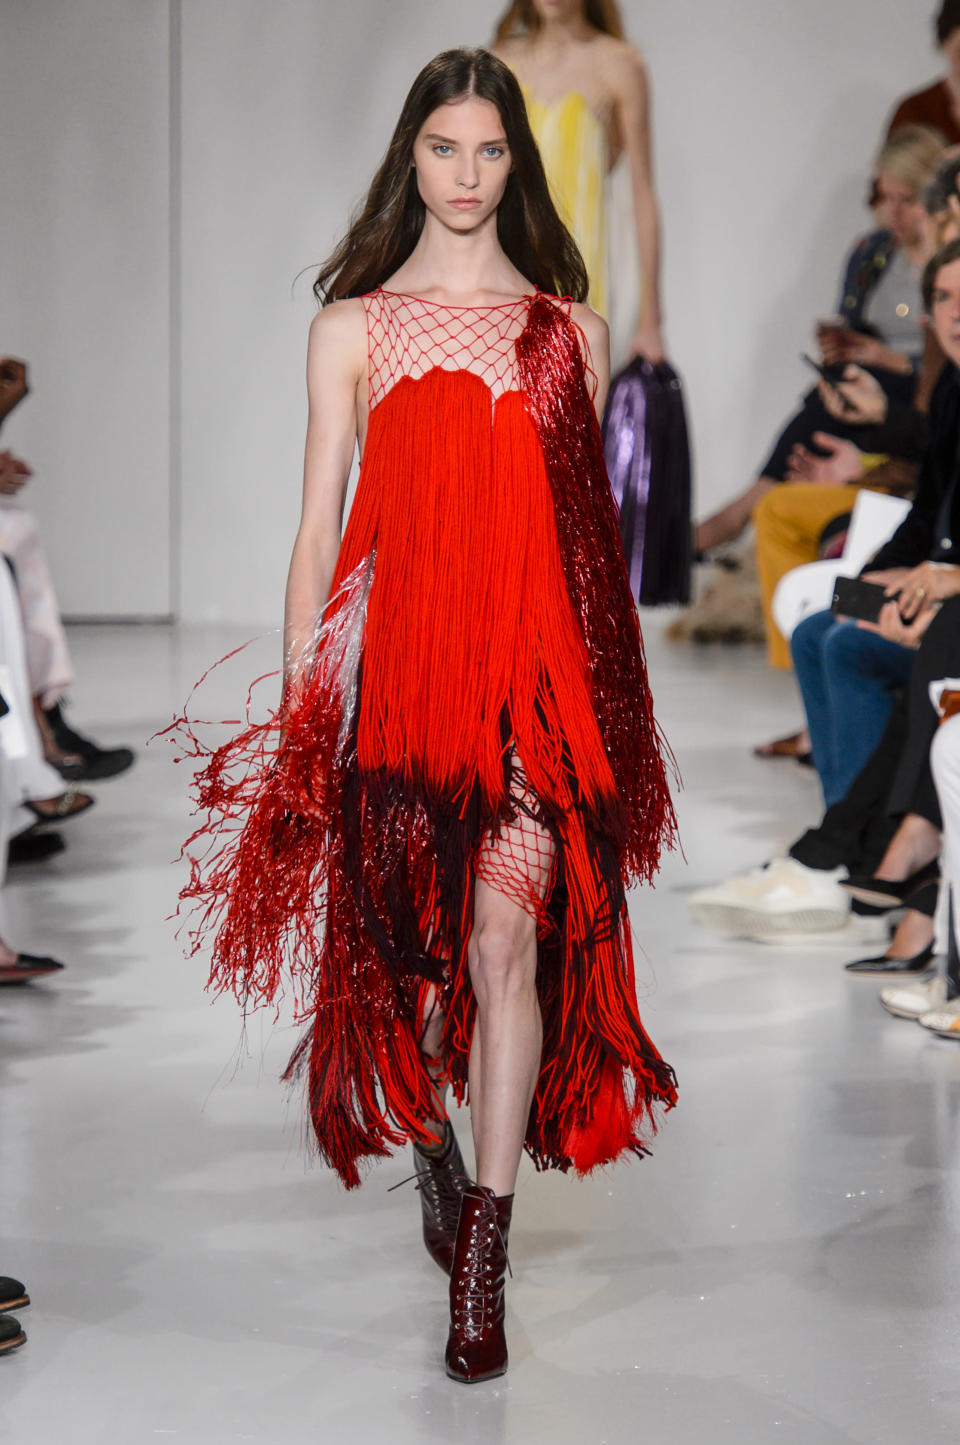 <p><i>Model wears a red-fringe dress from the Calvin Klein SS18 collection. (Photo: IMAXtree) </i></p>